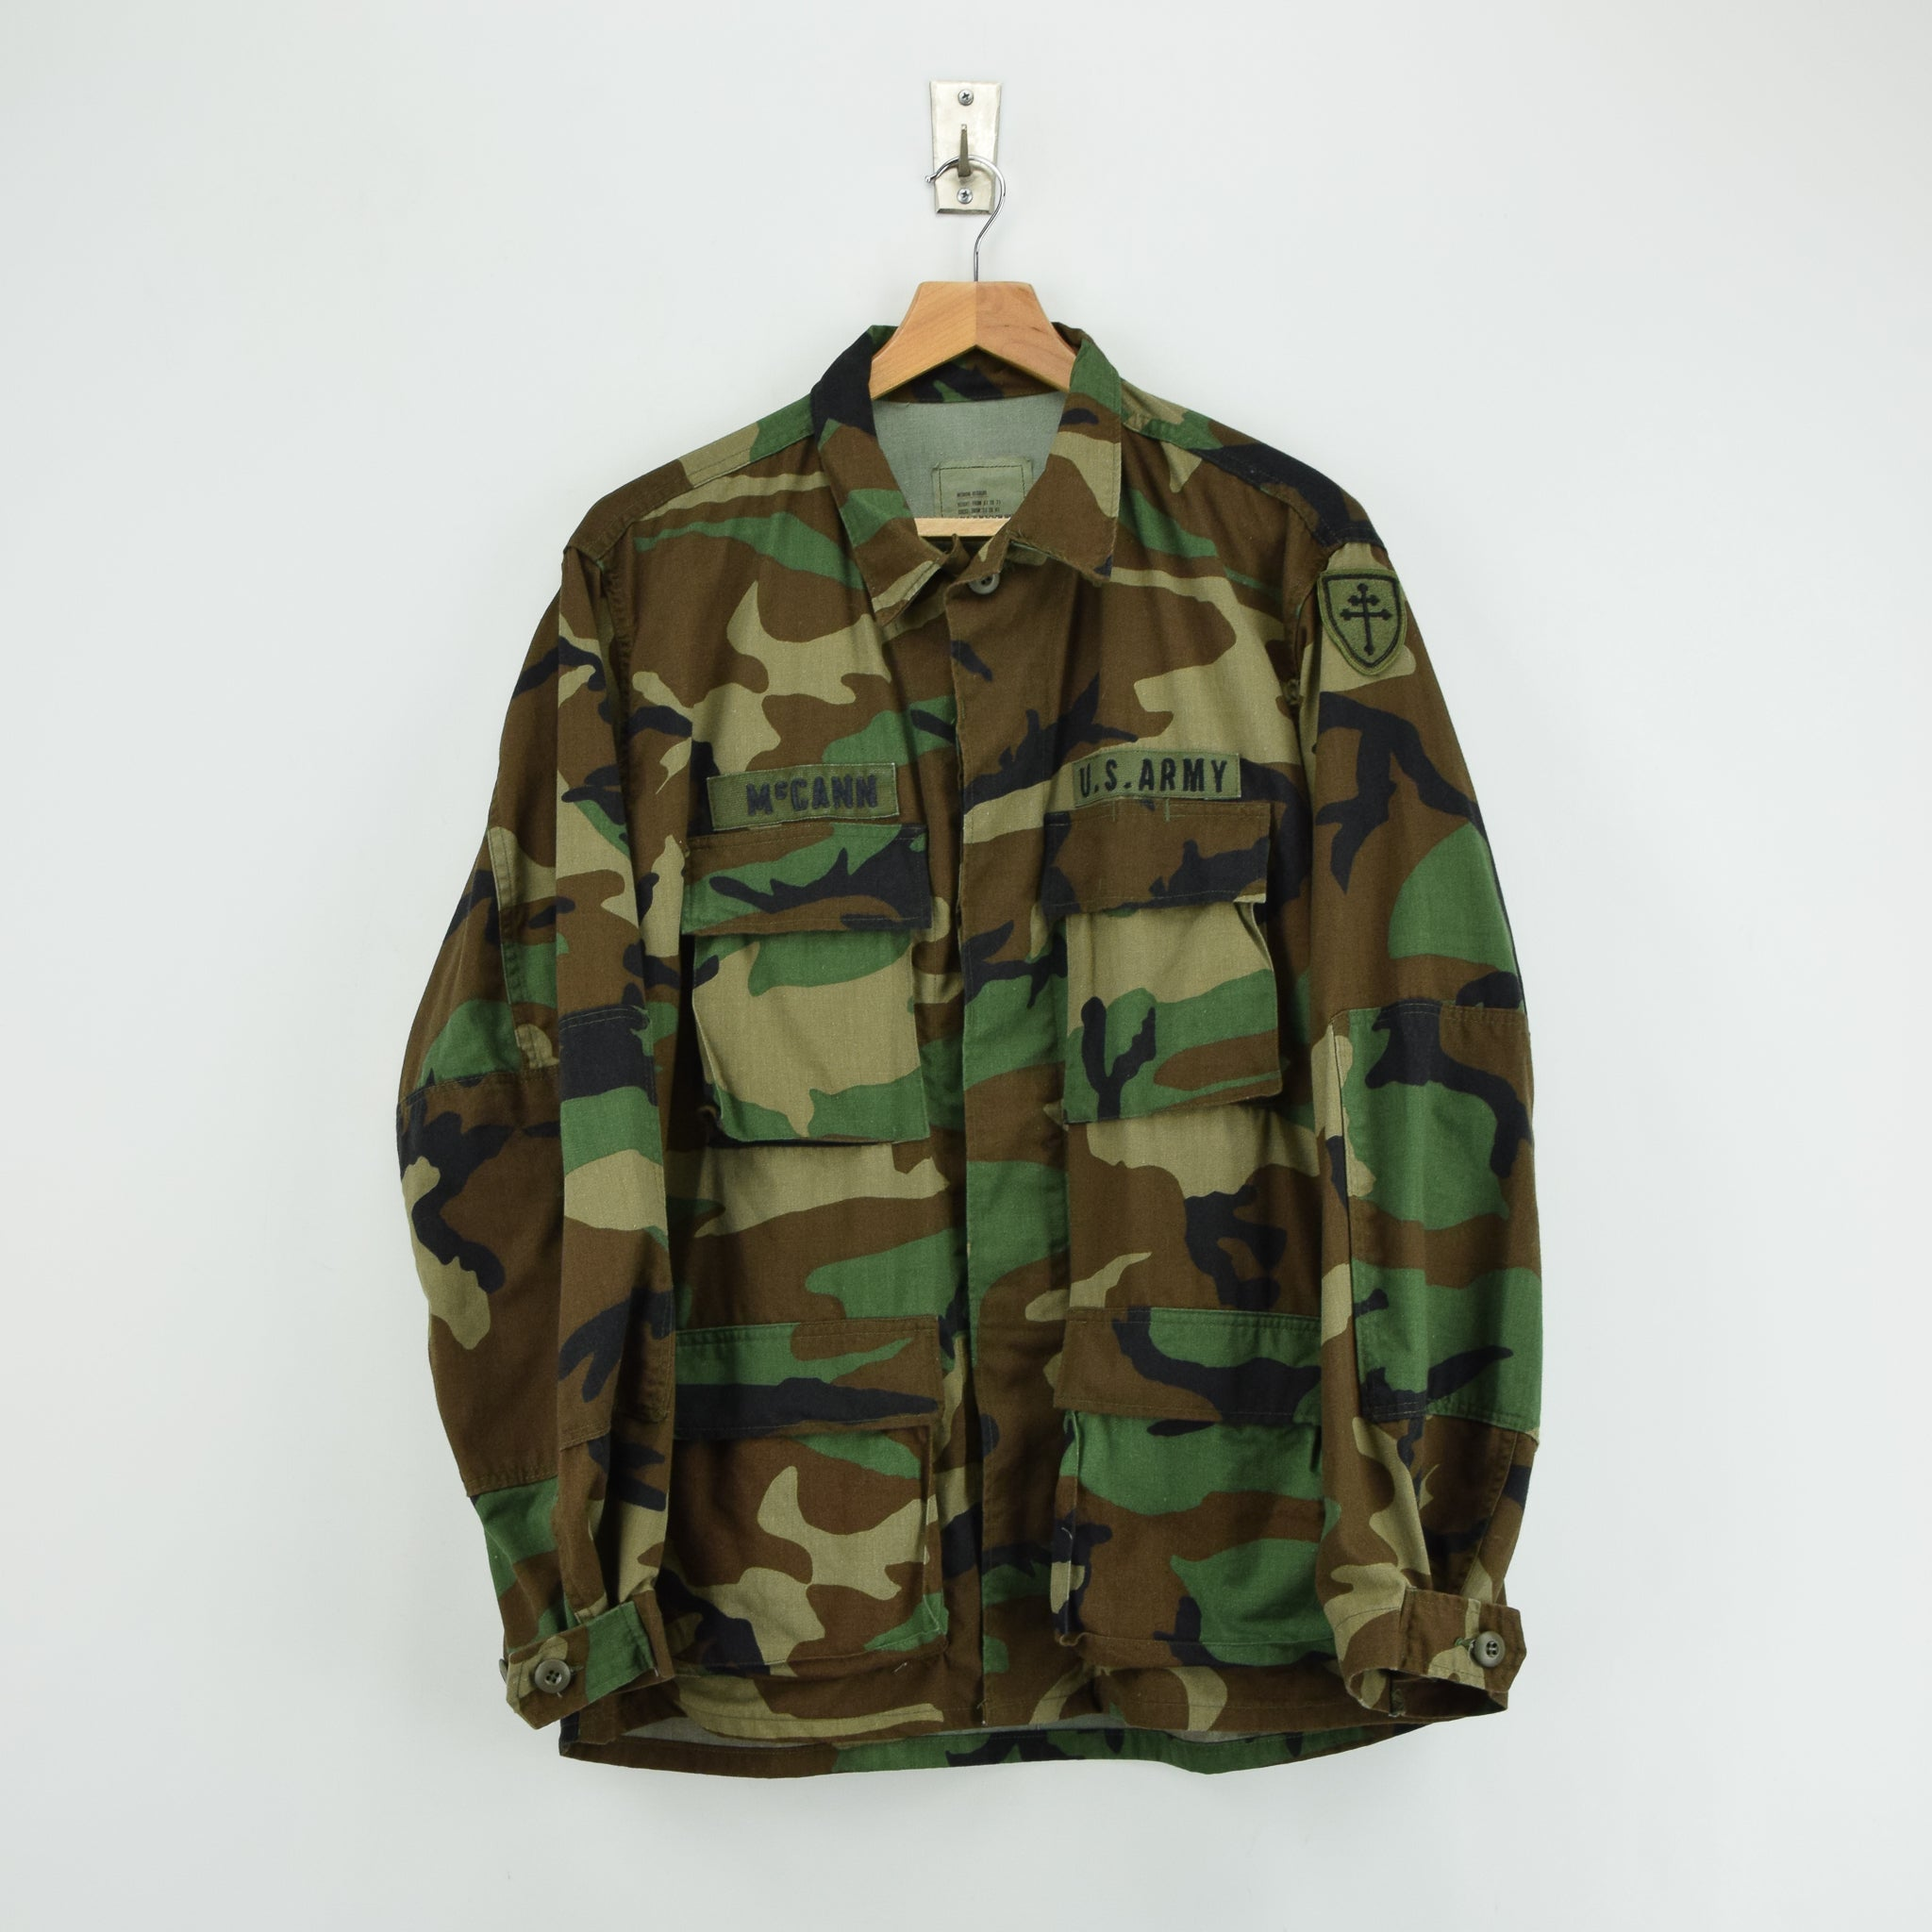 Vintage 80s US Army Woodland Camouflage Combat Coat Field Jacket M Reg front